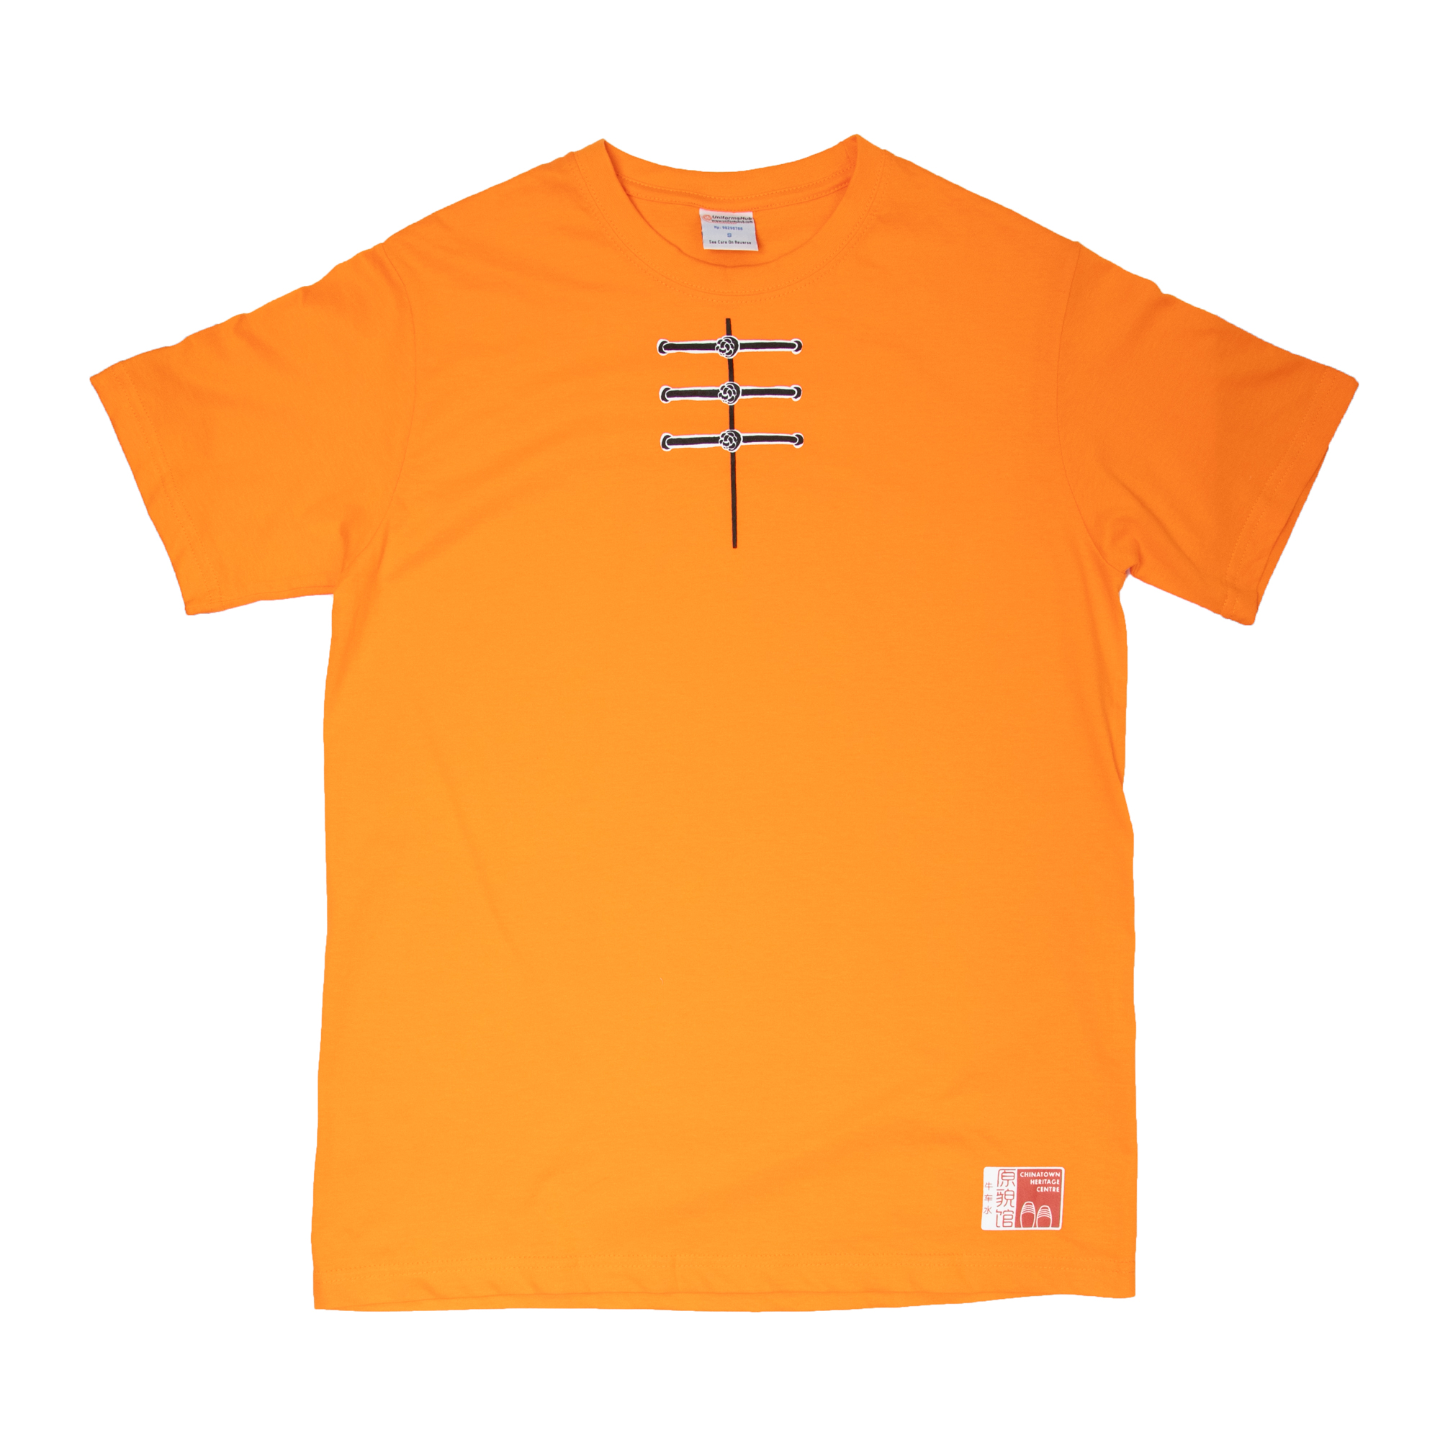 CHC T-shirt Orange